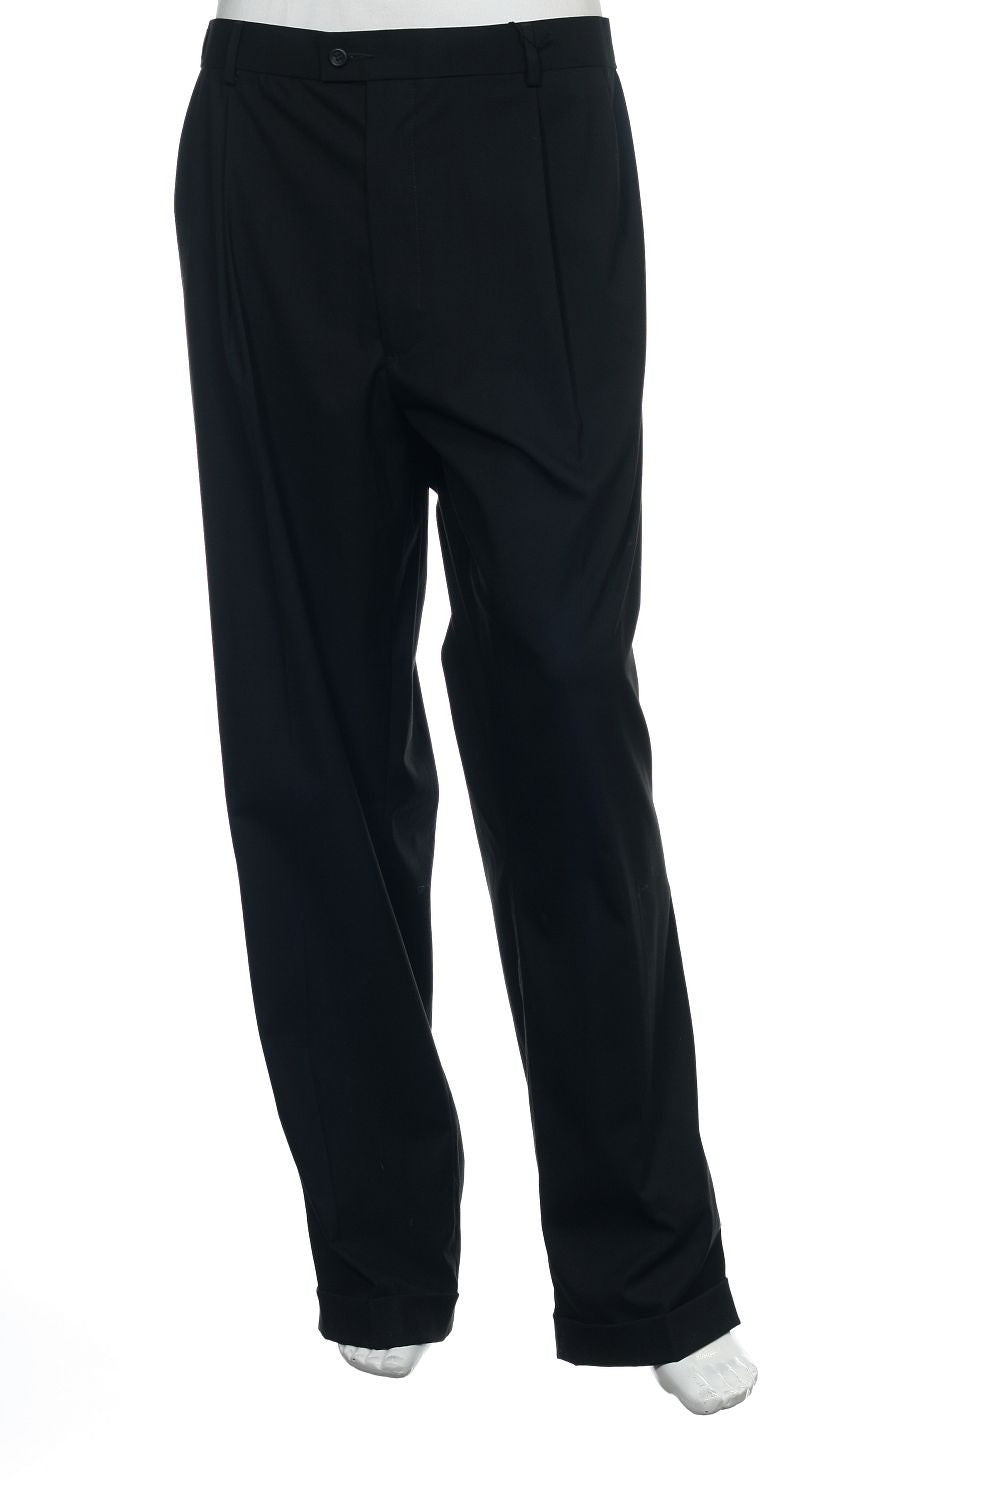 Dockers Premium Mens Black Pleated Dress Pants